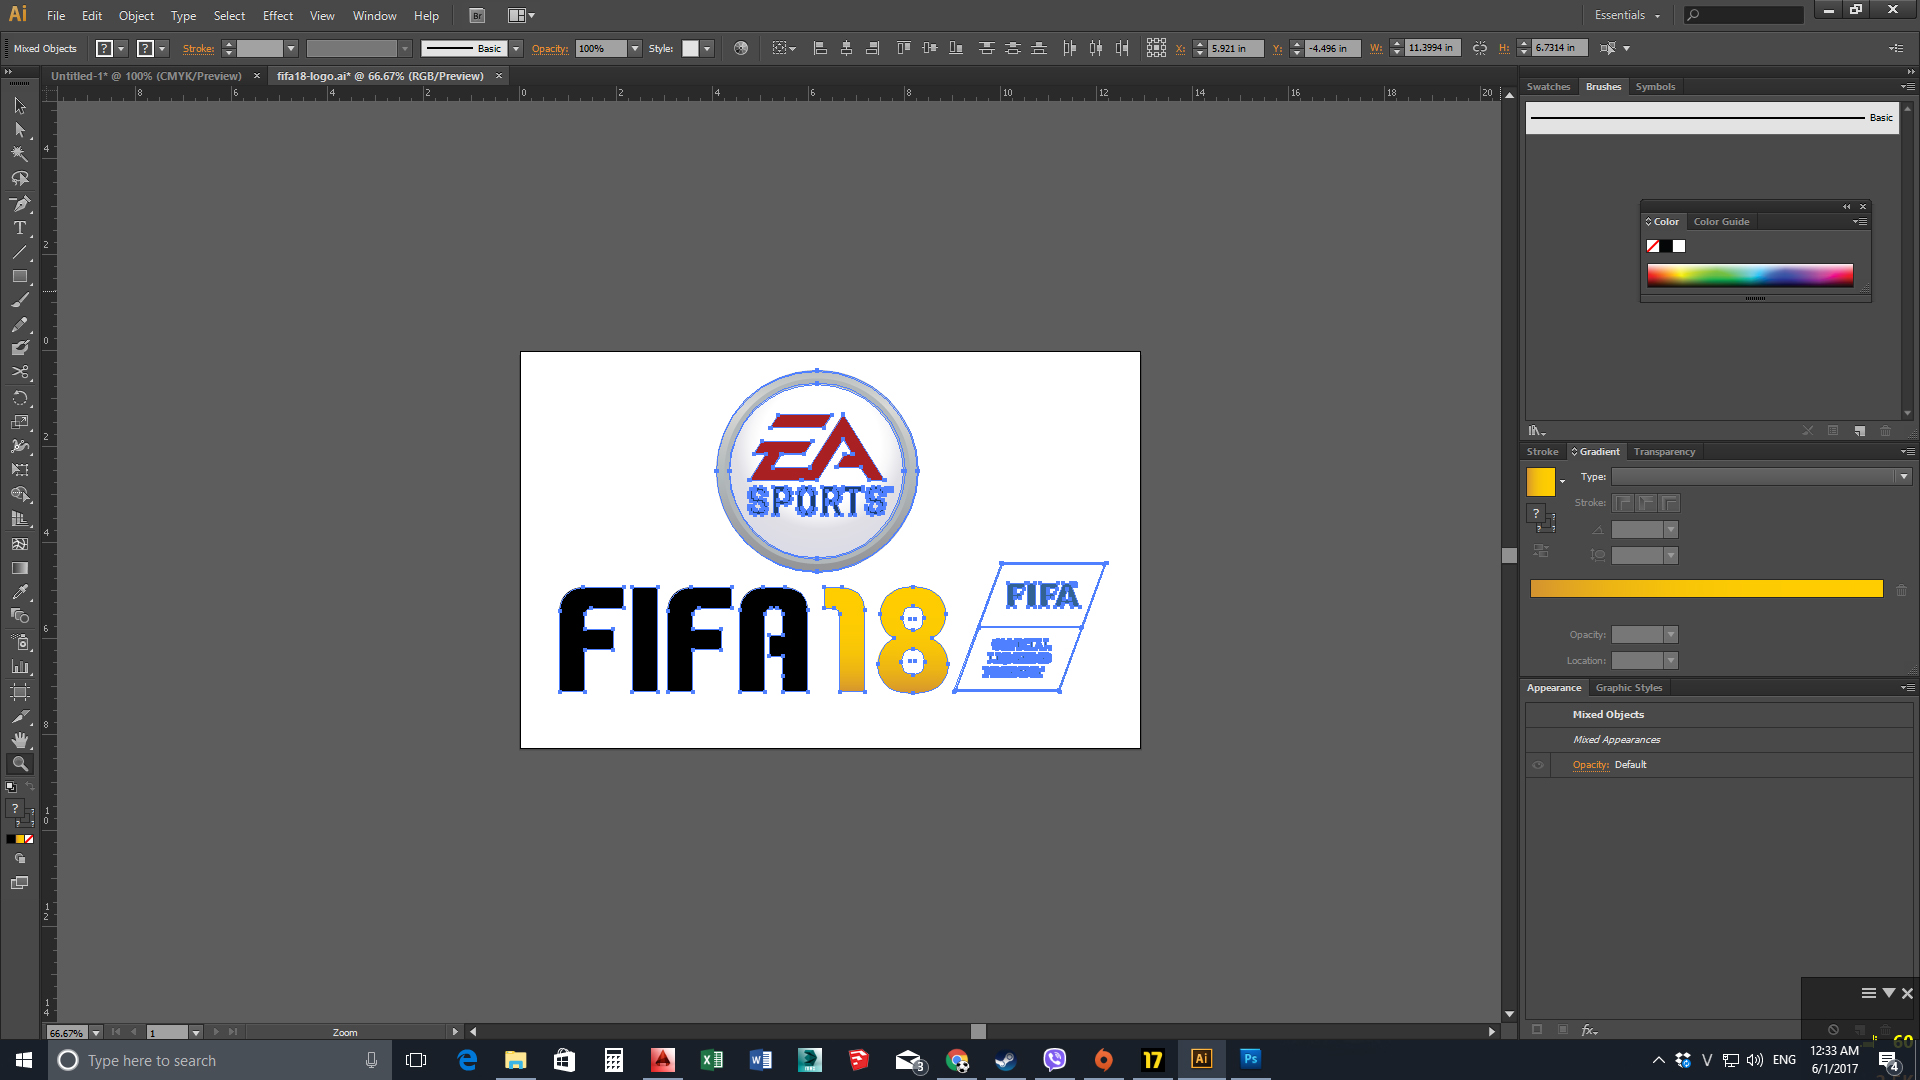 fifa18 preview.jpg